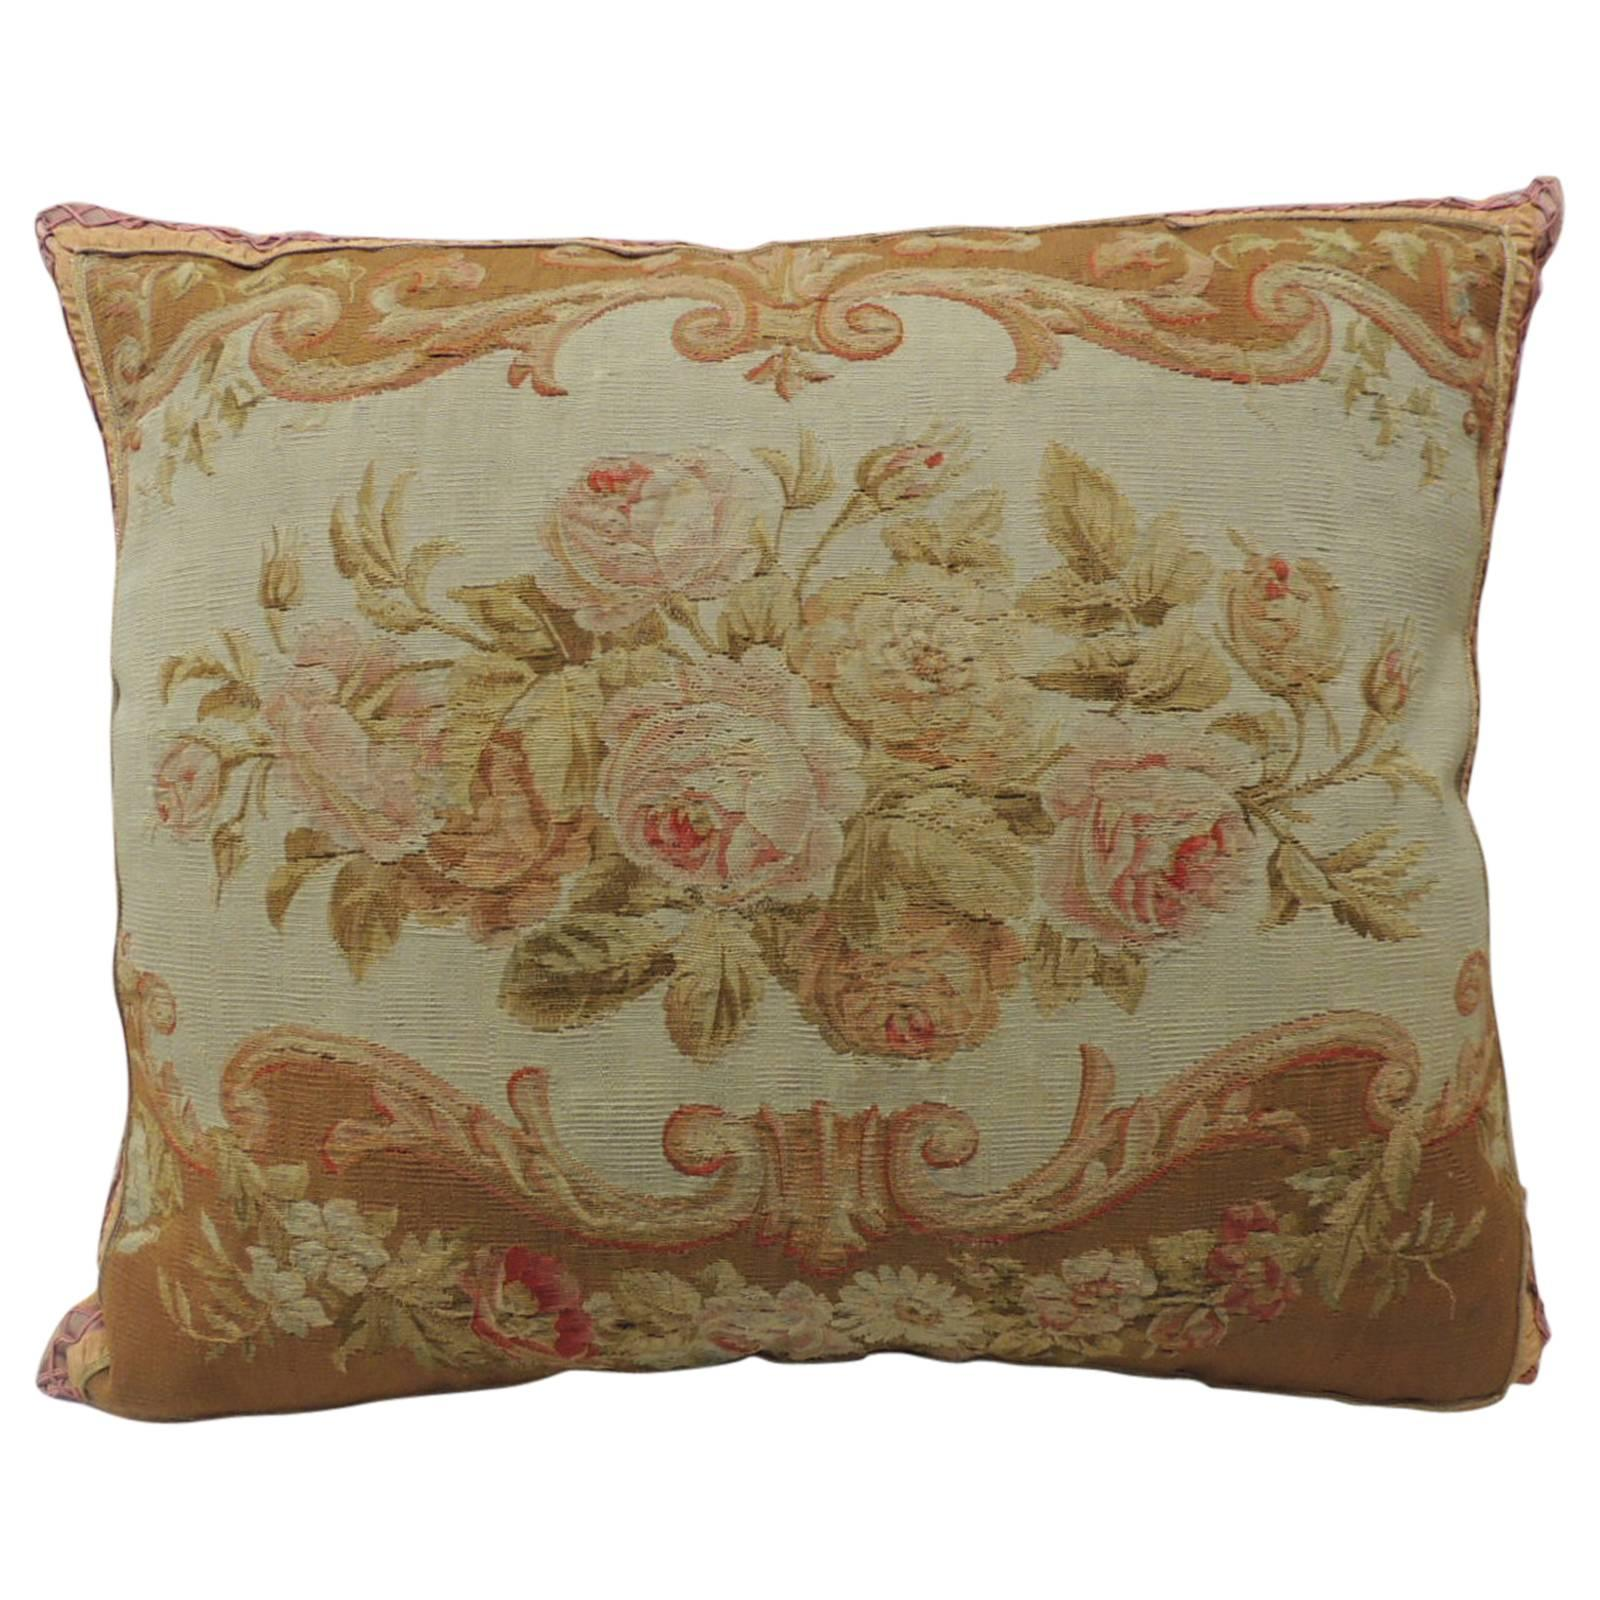 18th Century Verdure Tapestry Decorative Pillow With Antique Trim For Sale At 1stdibs